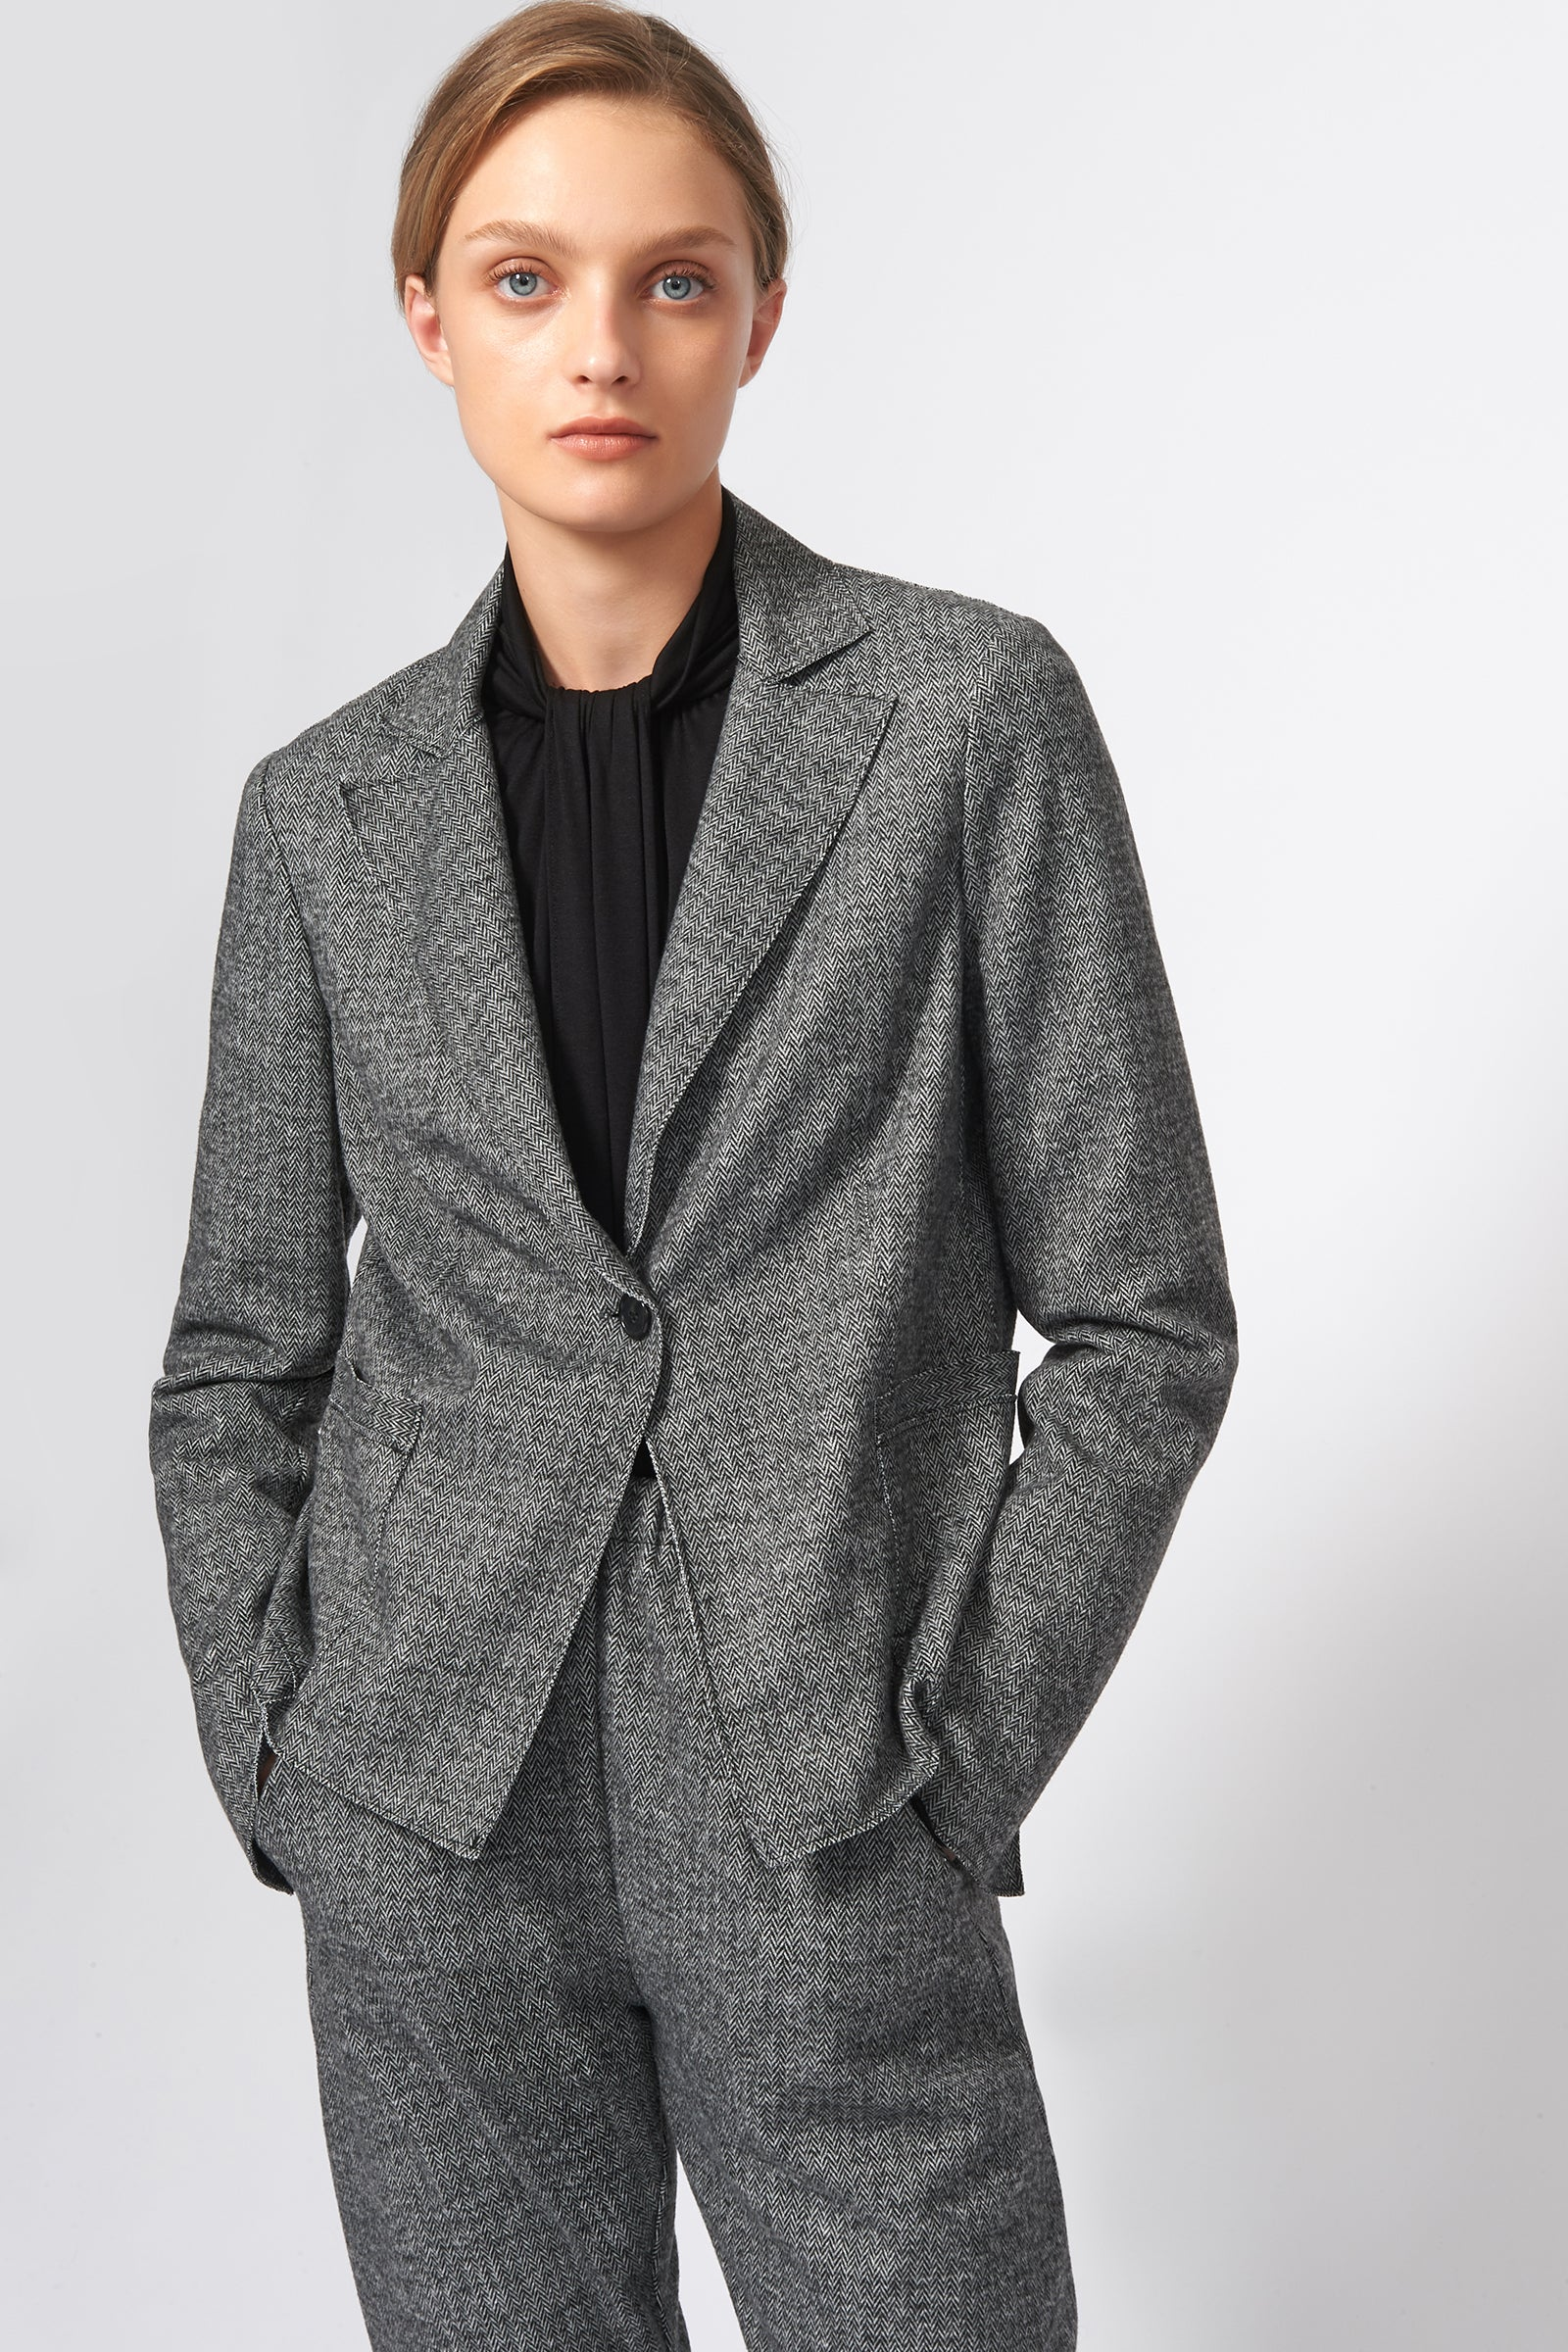 Kal Rieman Raw Edge Blazer in Black Chevron on Model Front View